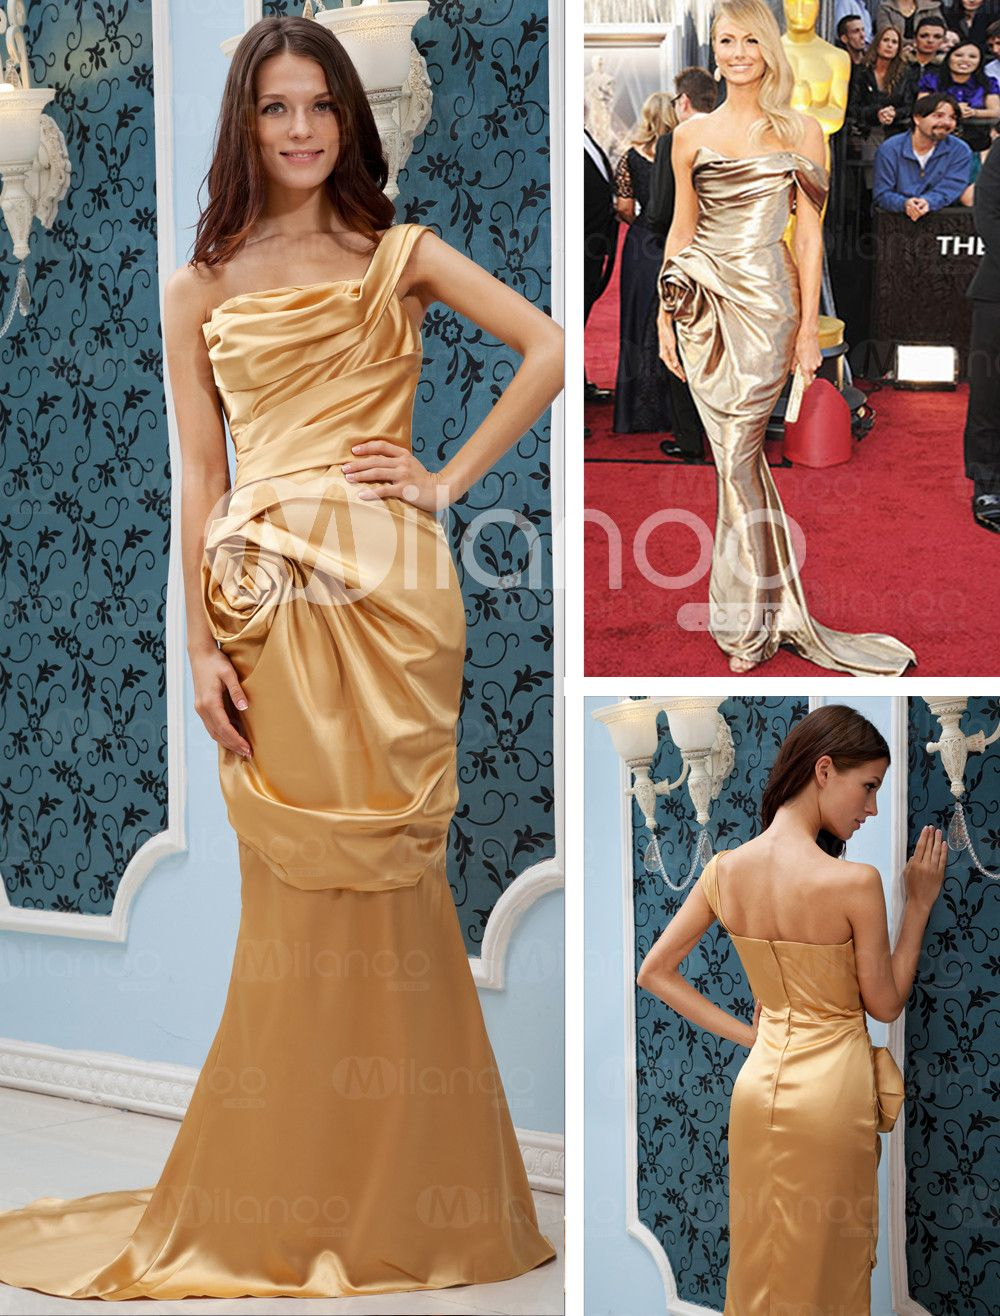 knockoff-I'm not sure why chinese factories manage to find the tackiest shades of satin, almost like a mission.  One of the commentators said he ordered it for a girlfriend, hope she likes wearing a pink gold garbage bag